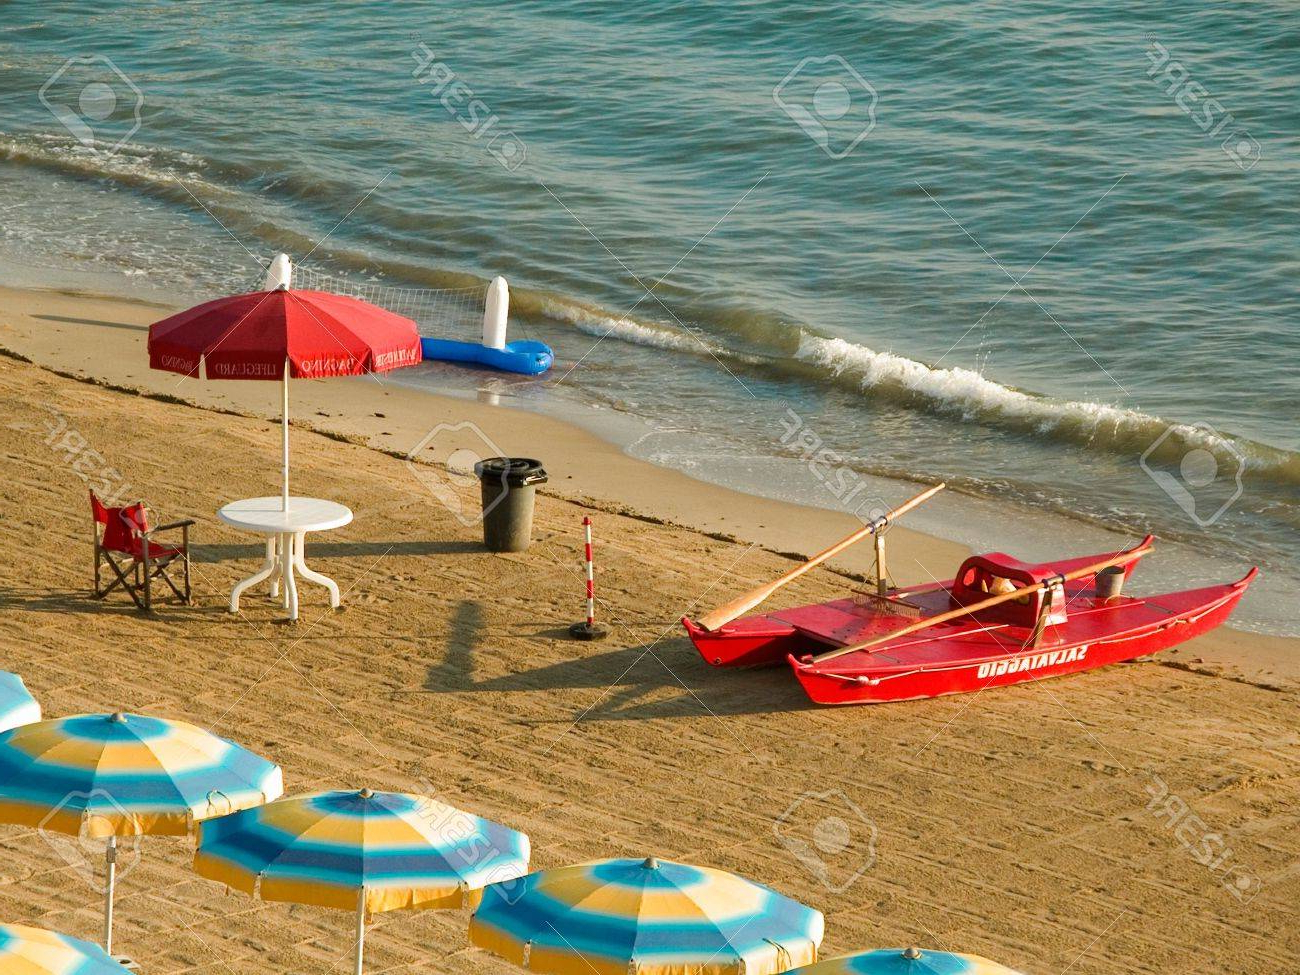 Italian Beach Umbrellas With Regard To 2020 Early Morning Seaside Scene With Umbrellas And Red Lifeguard.. (Gallery 14 of 20)